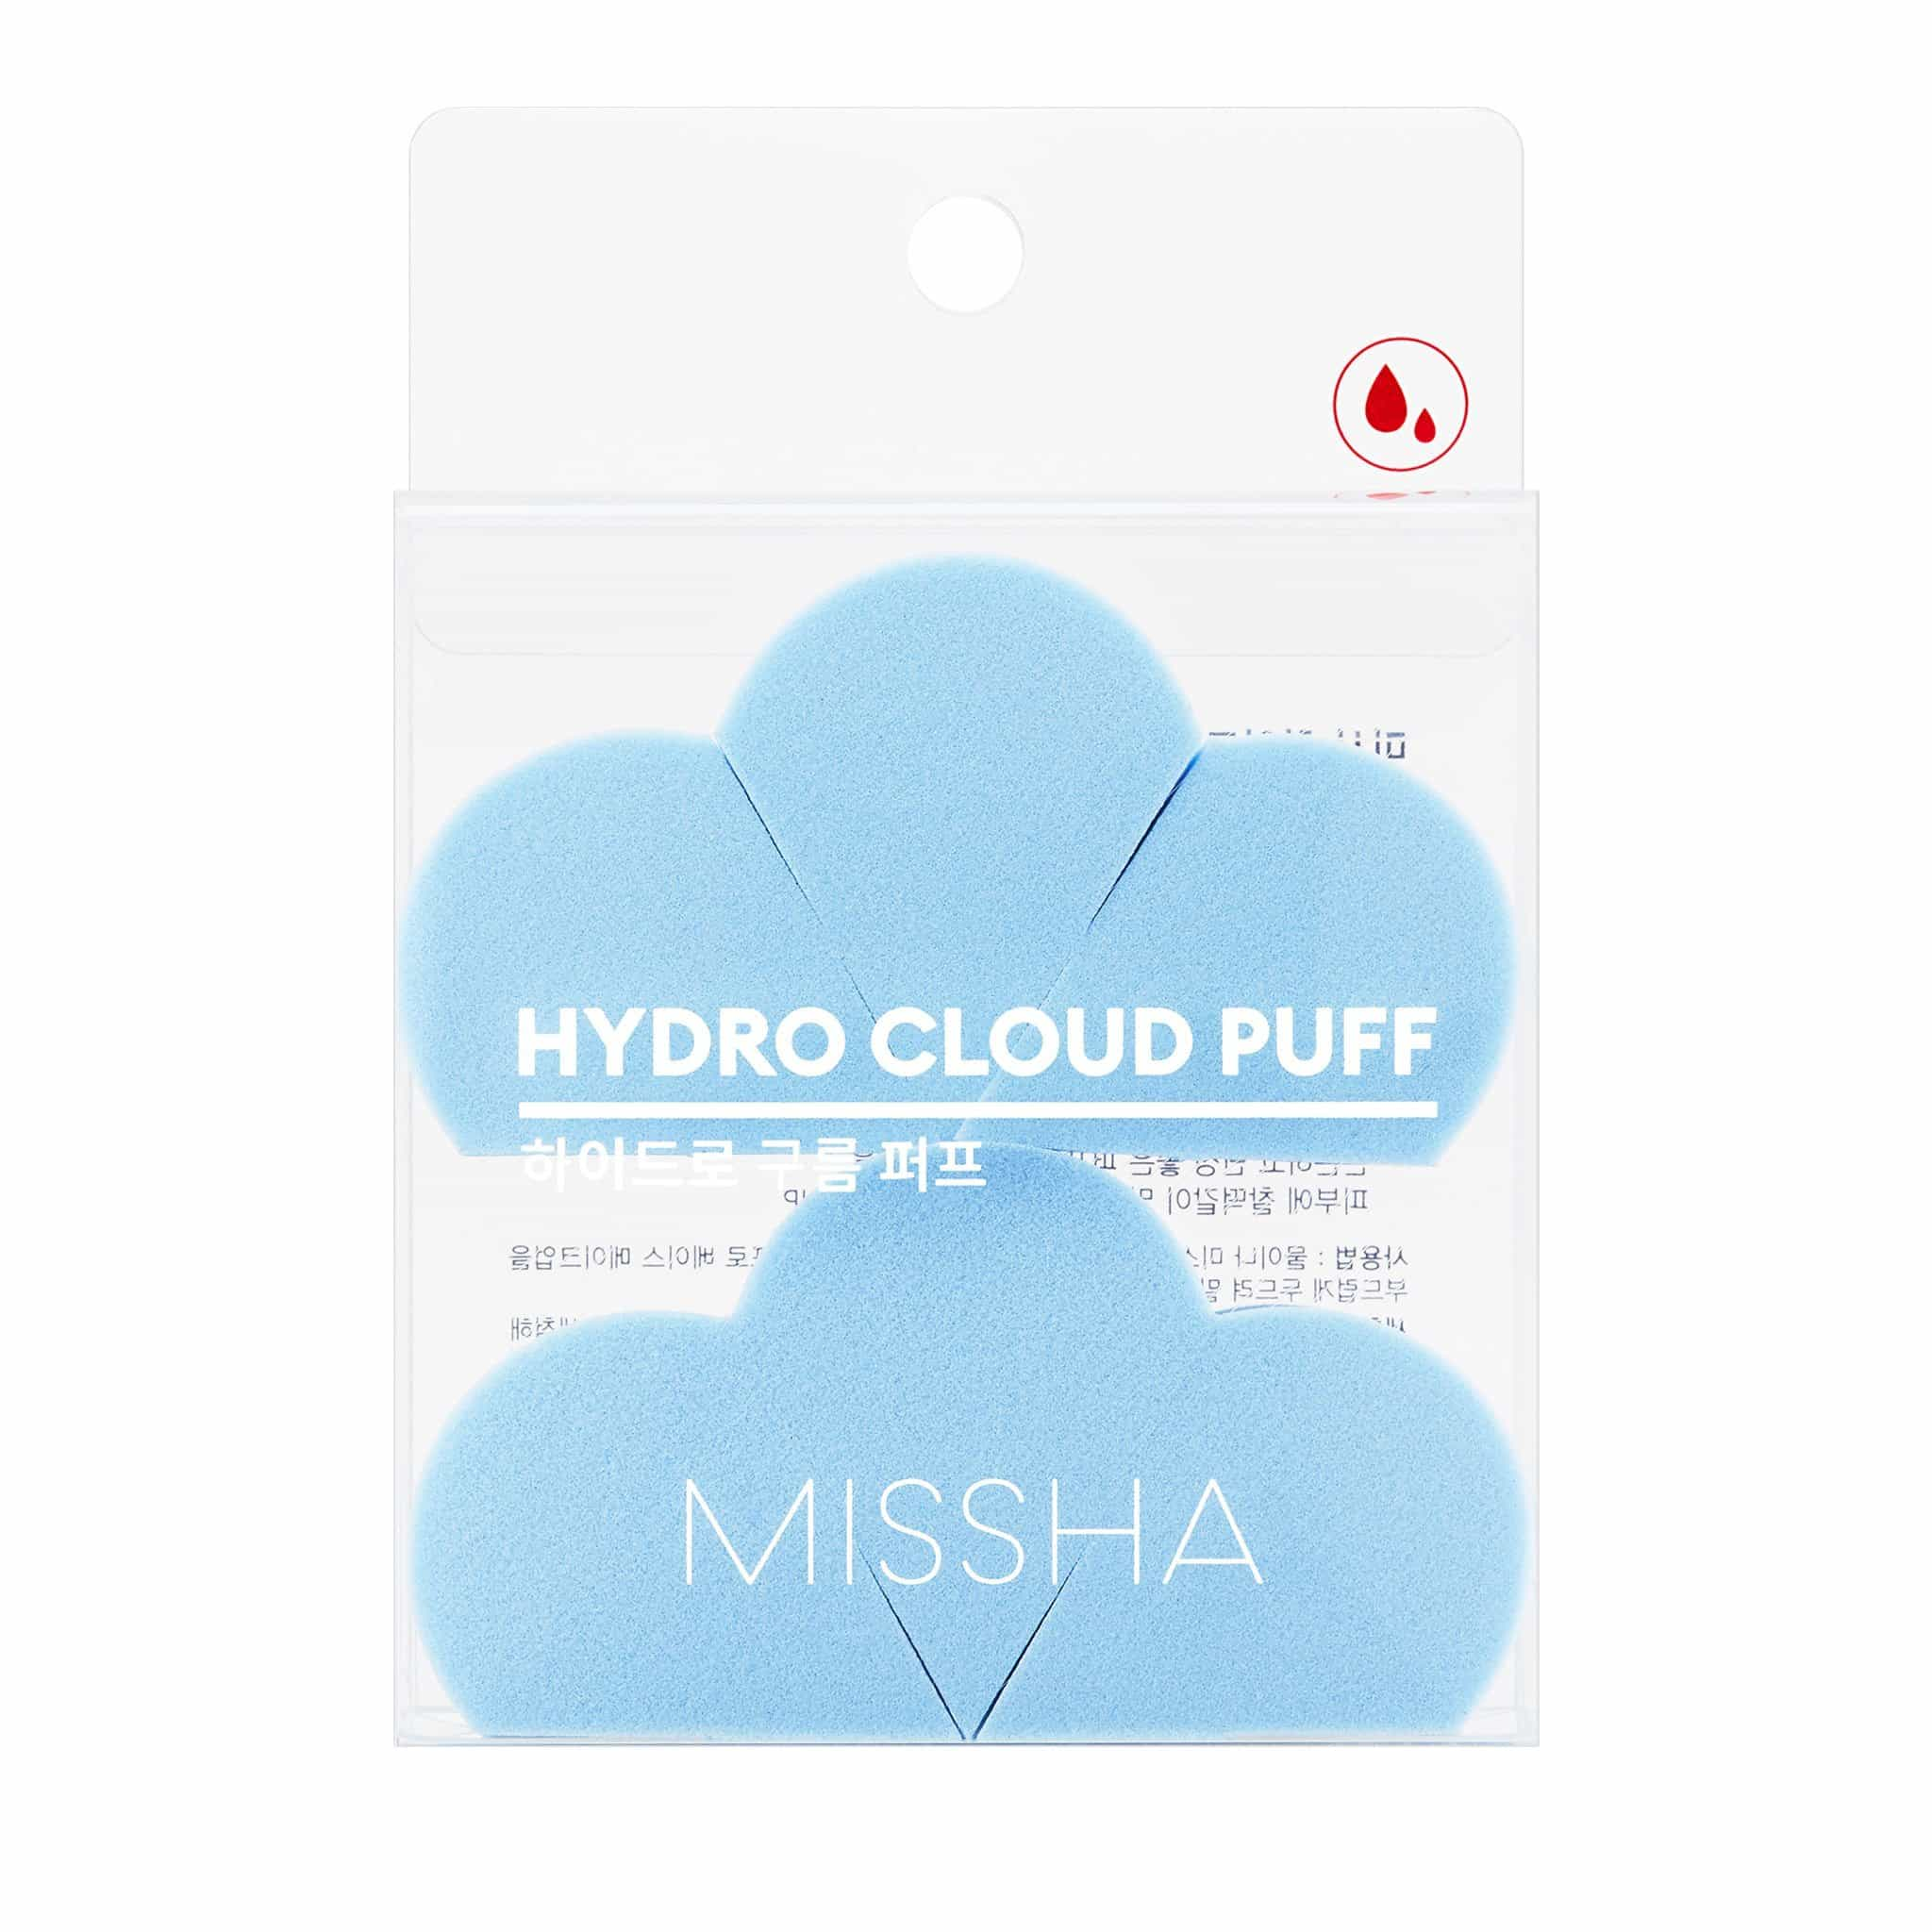 HYDRO CLOUD PUFF - MISSHA